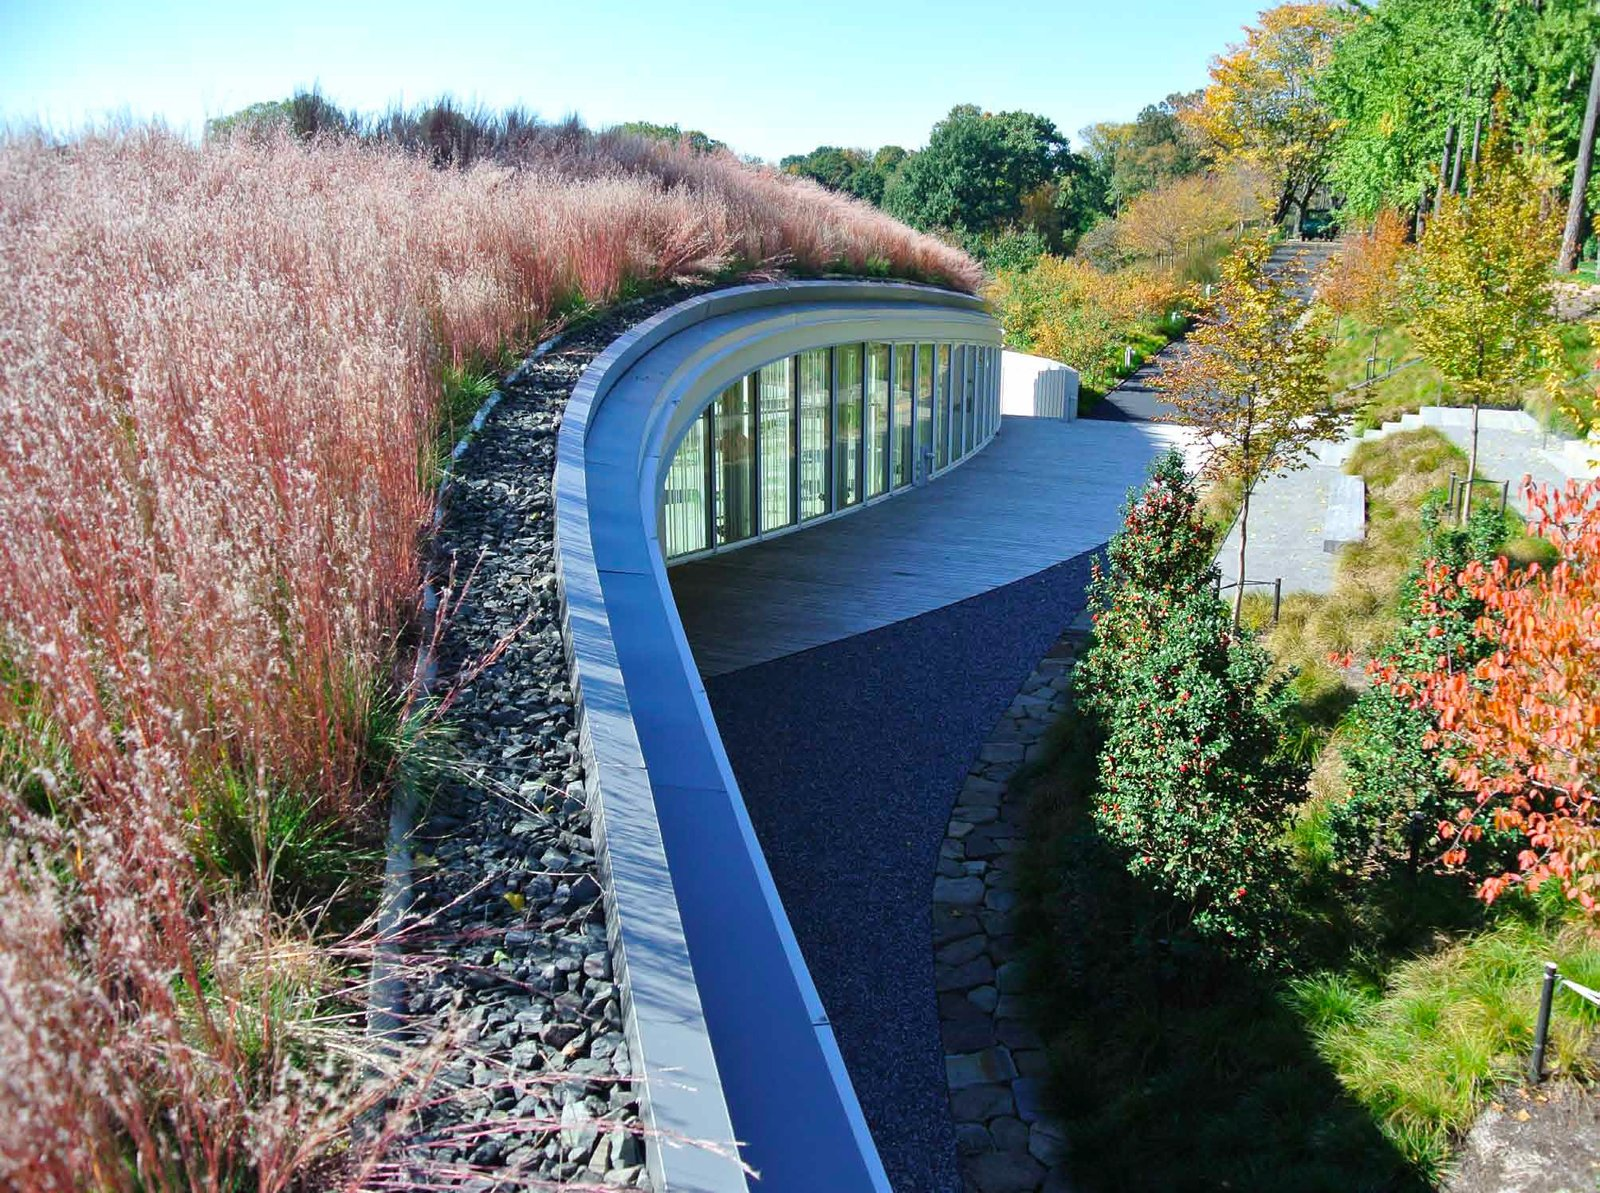 HM White Site Architects' landscape design atop the roof of the Brooklyn Botanic Garden Visitor Center allows the garden environment to remain the focal point of the grounds. Photo courtesy of HM White Site Architects.  New York Landscape Architects Design Awards by Sara Carpenter